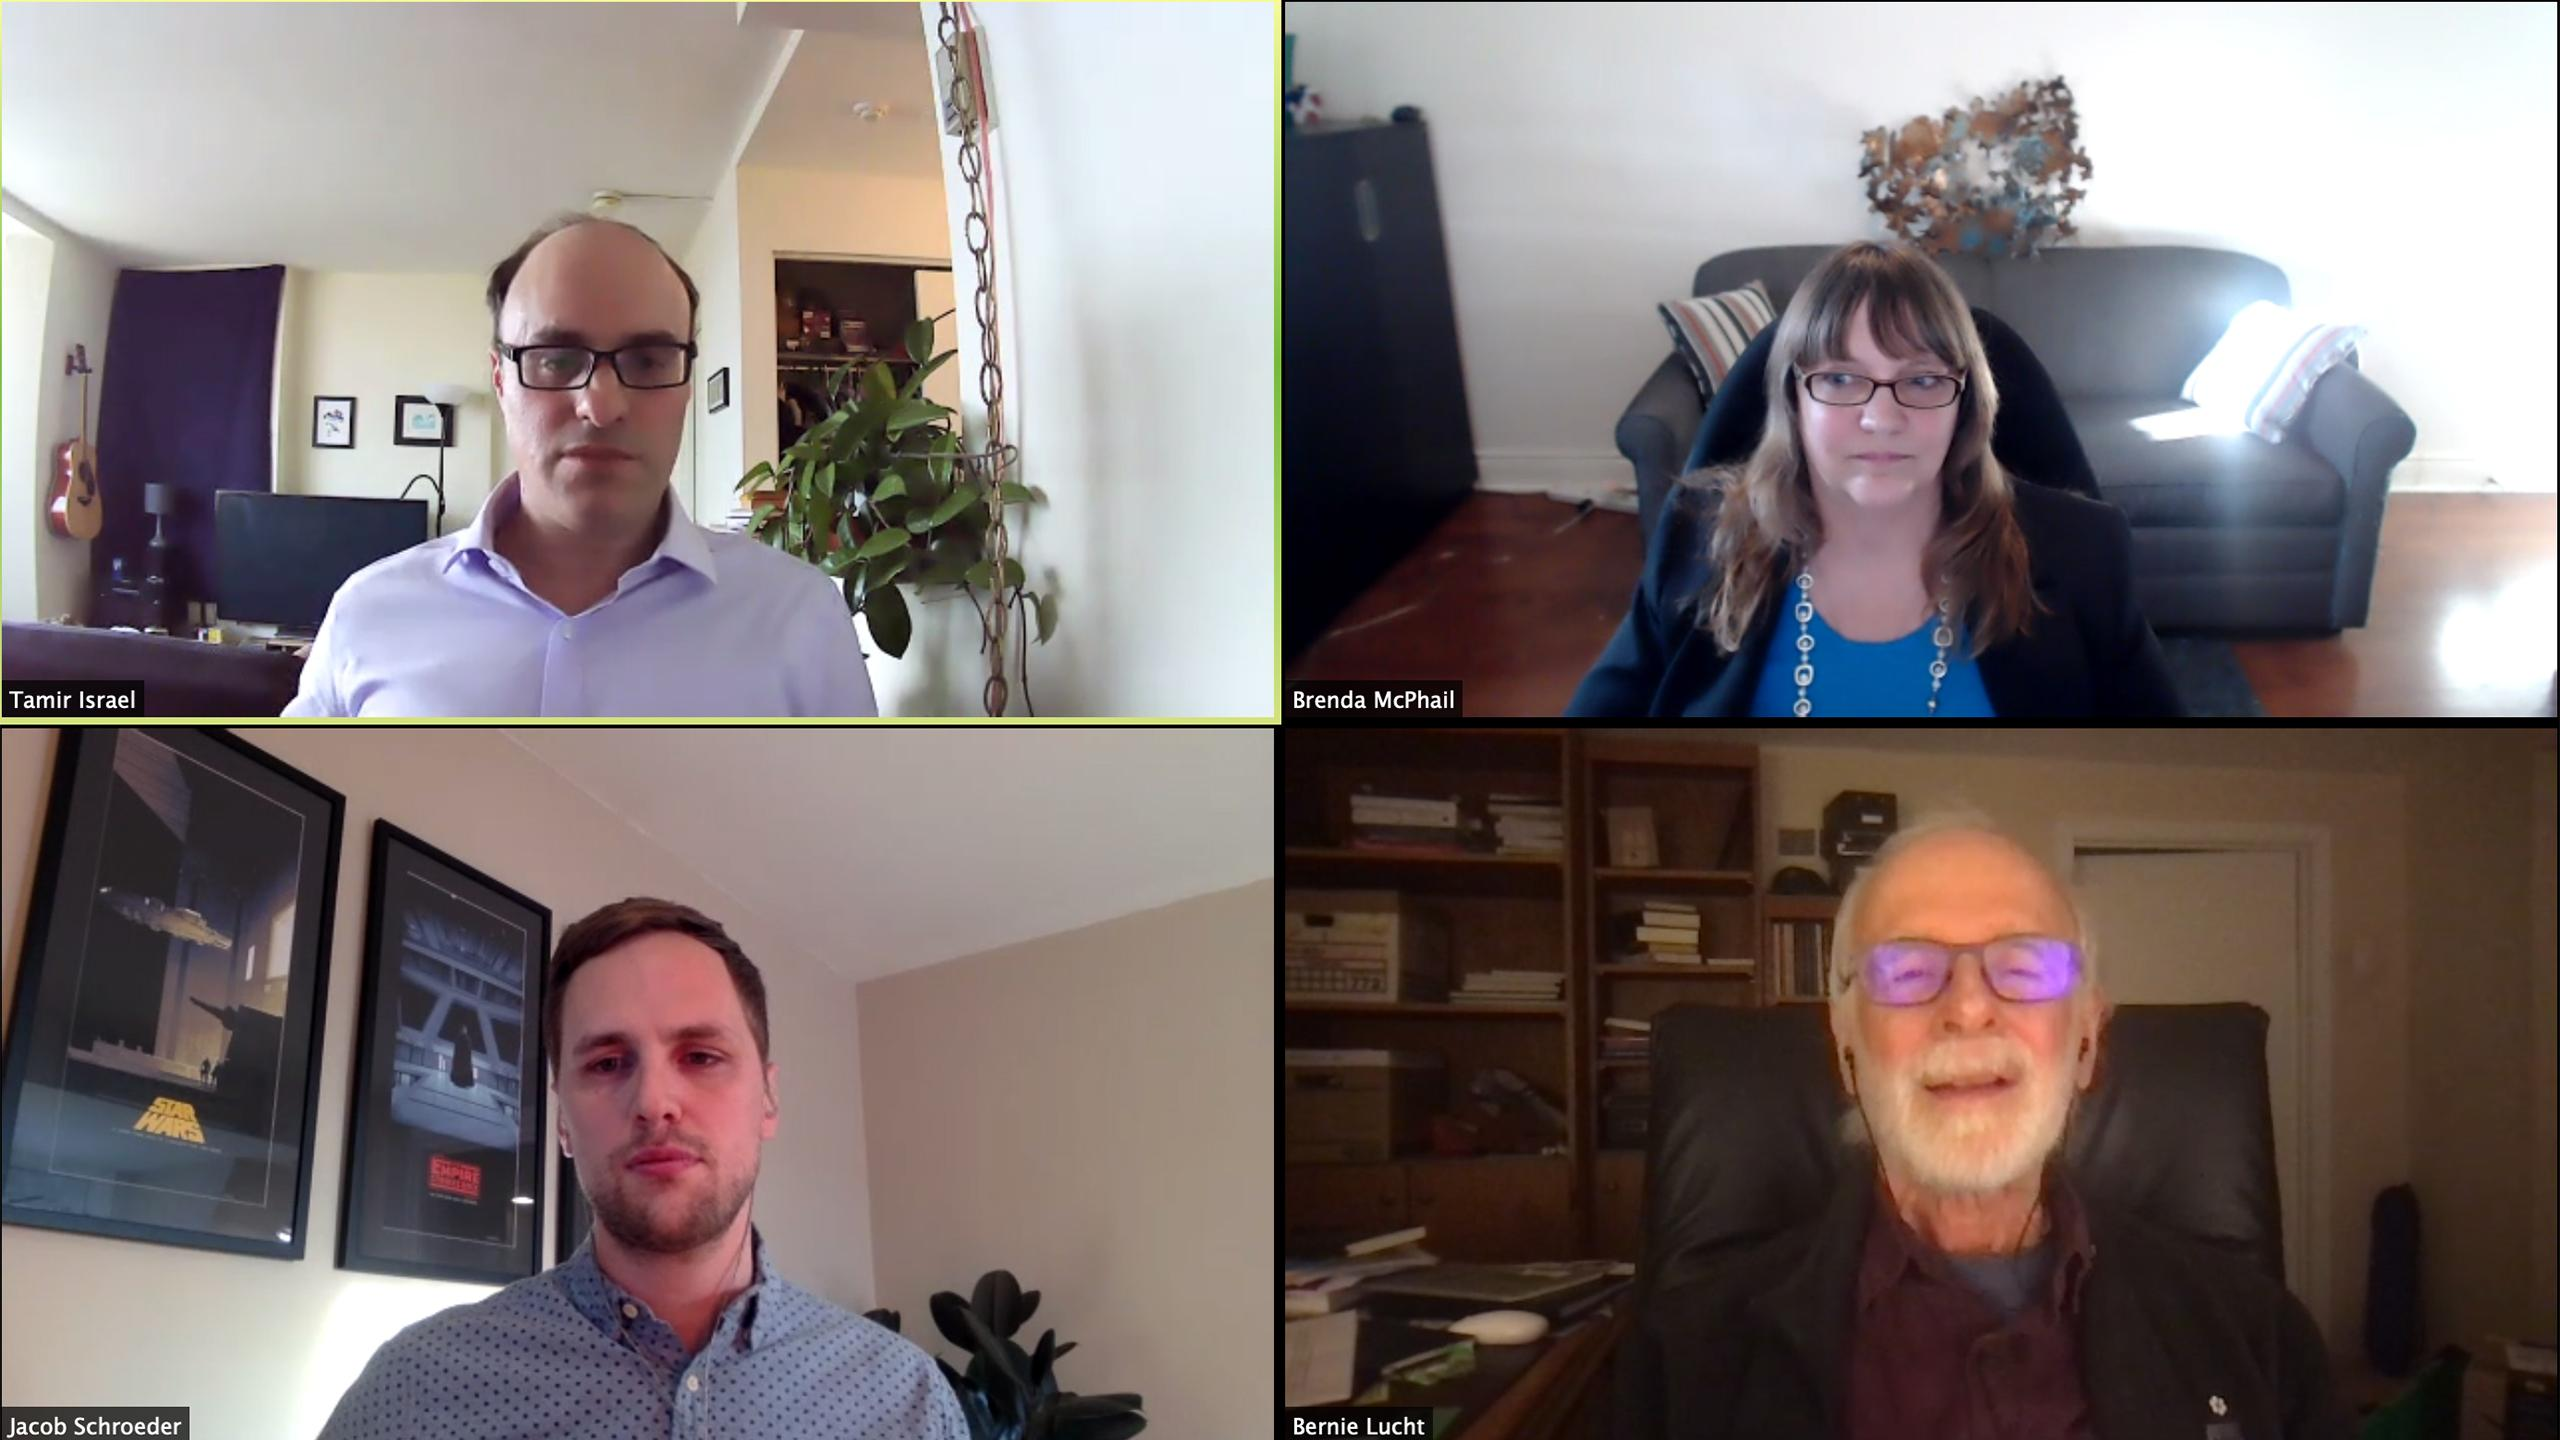 A video call with Tamir Israel, Brenda McPhail, Jacob Schroeder and Bernie Lucht.